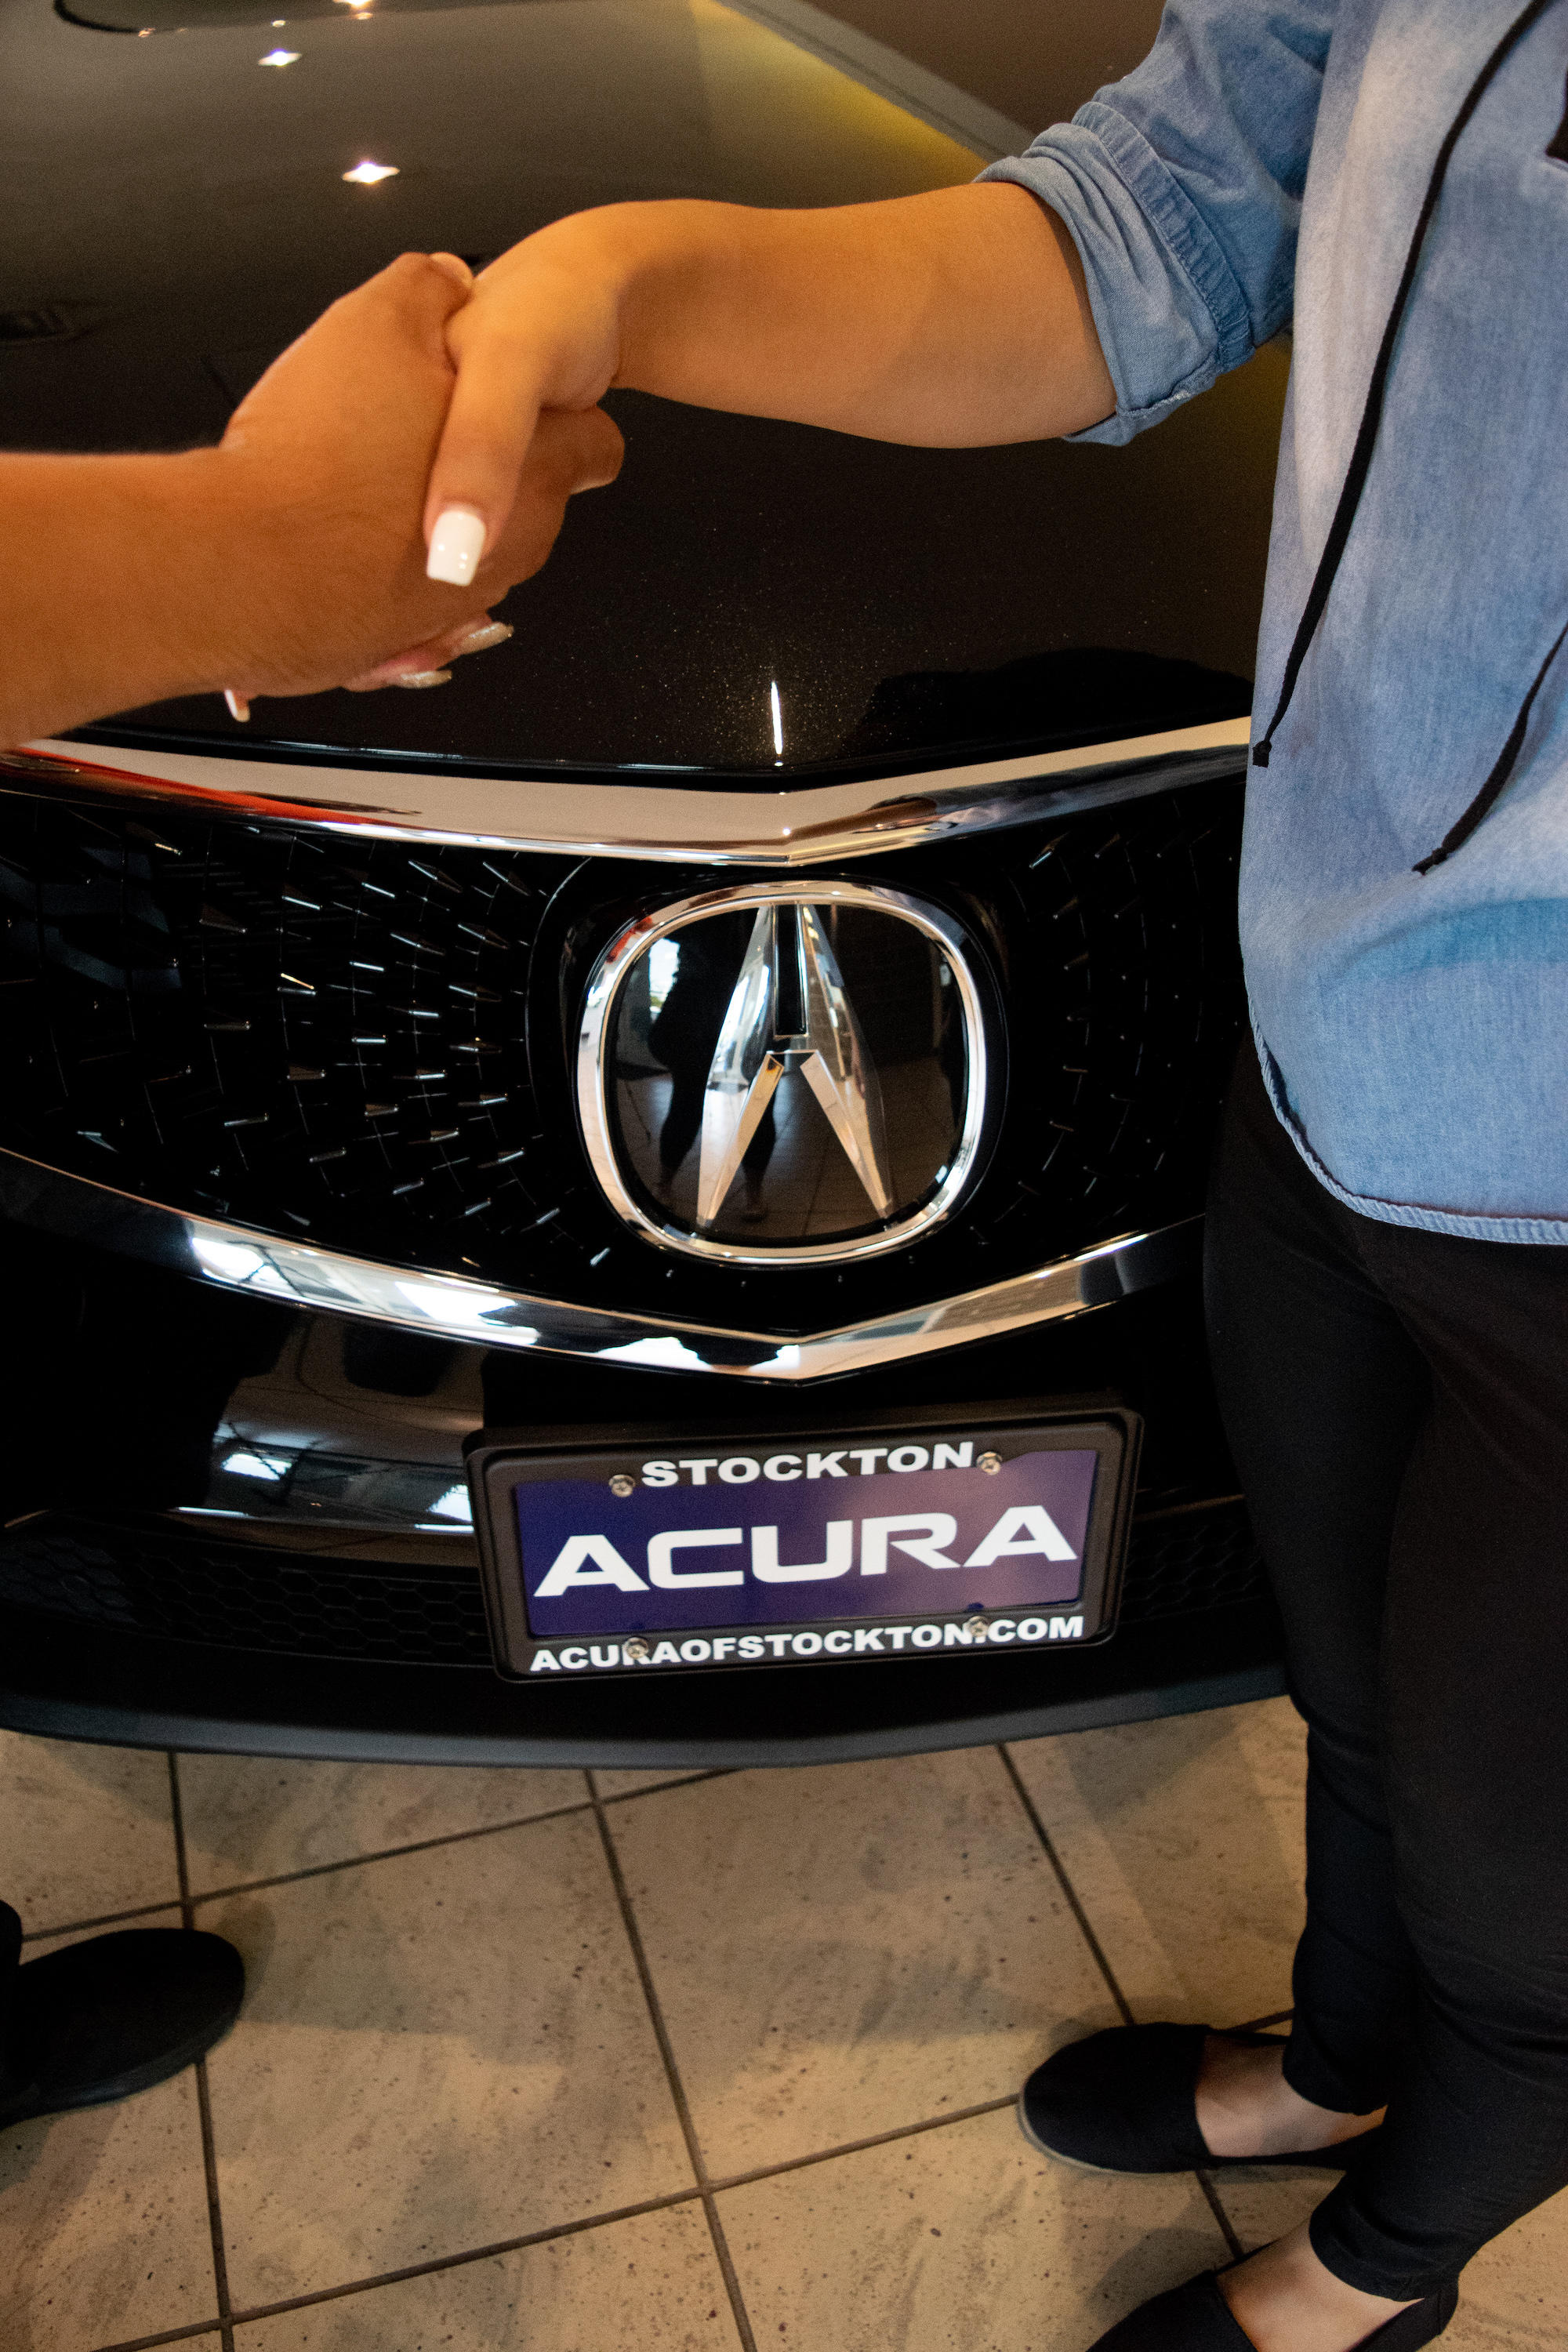 Acura Of Stockton 2222 East Hammer Lane Stockton Ca Auto Dealers